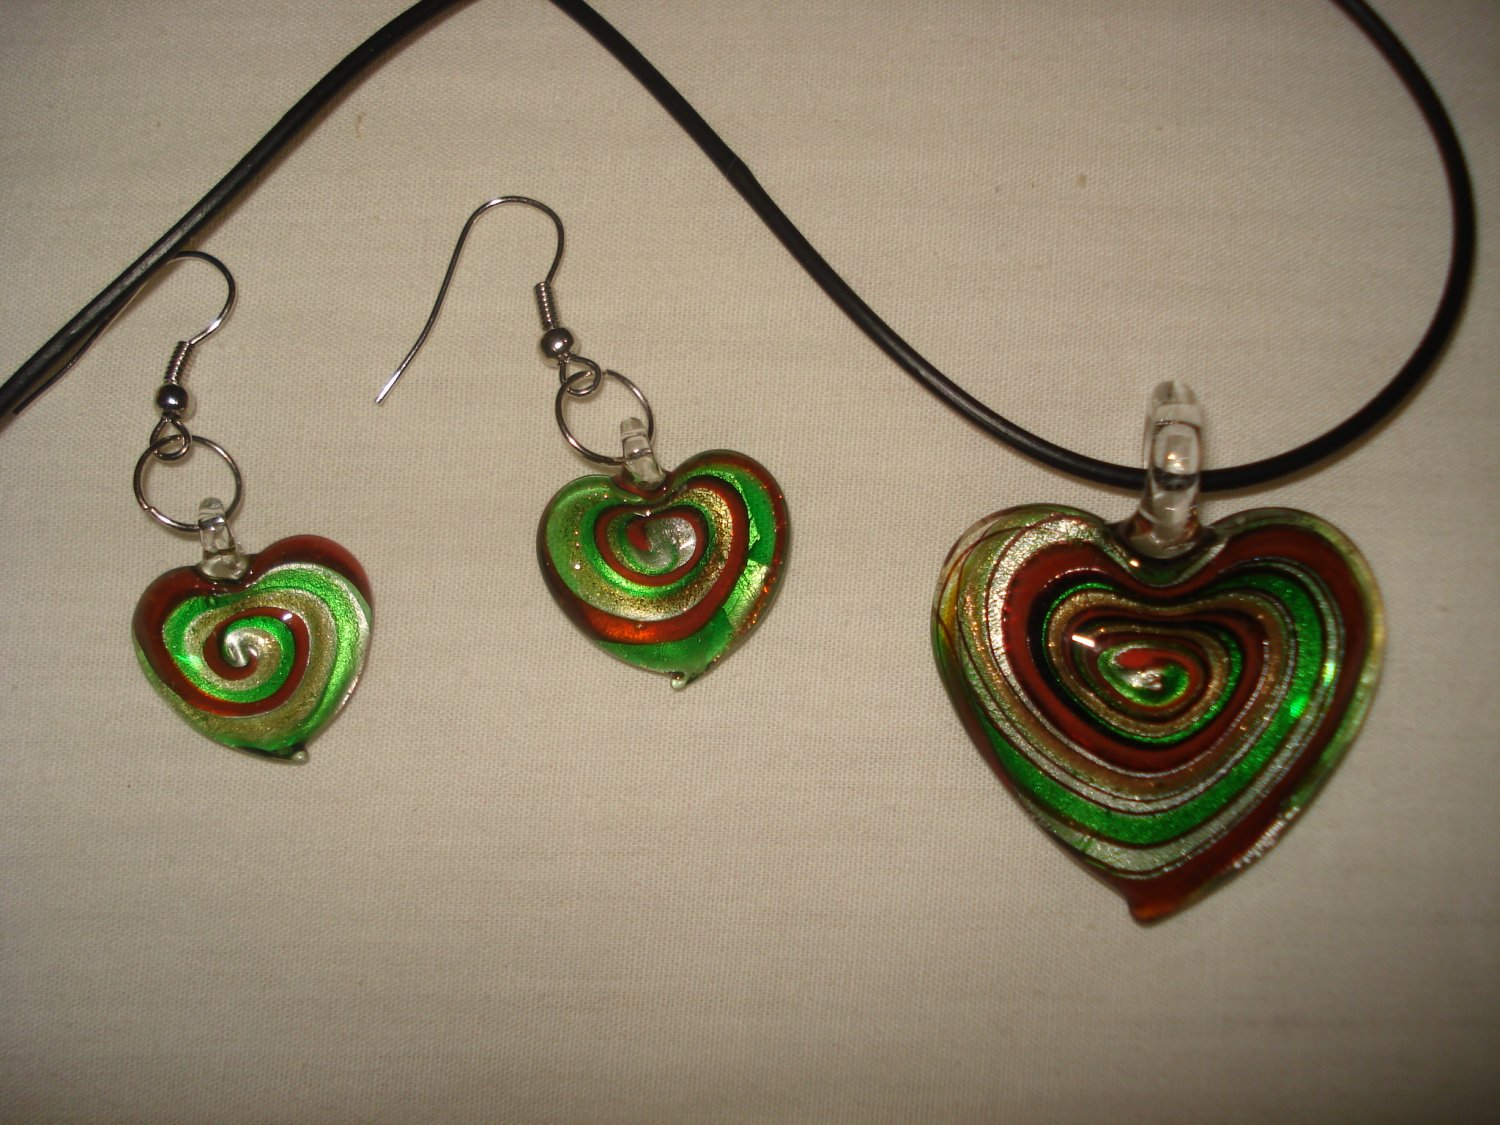 Glass heart necklace and earring set with gold, green, black & copper swirls - eg21